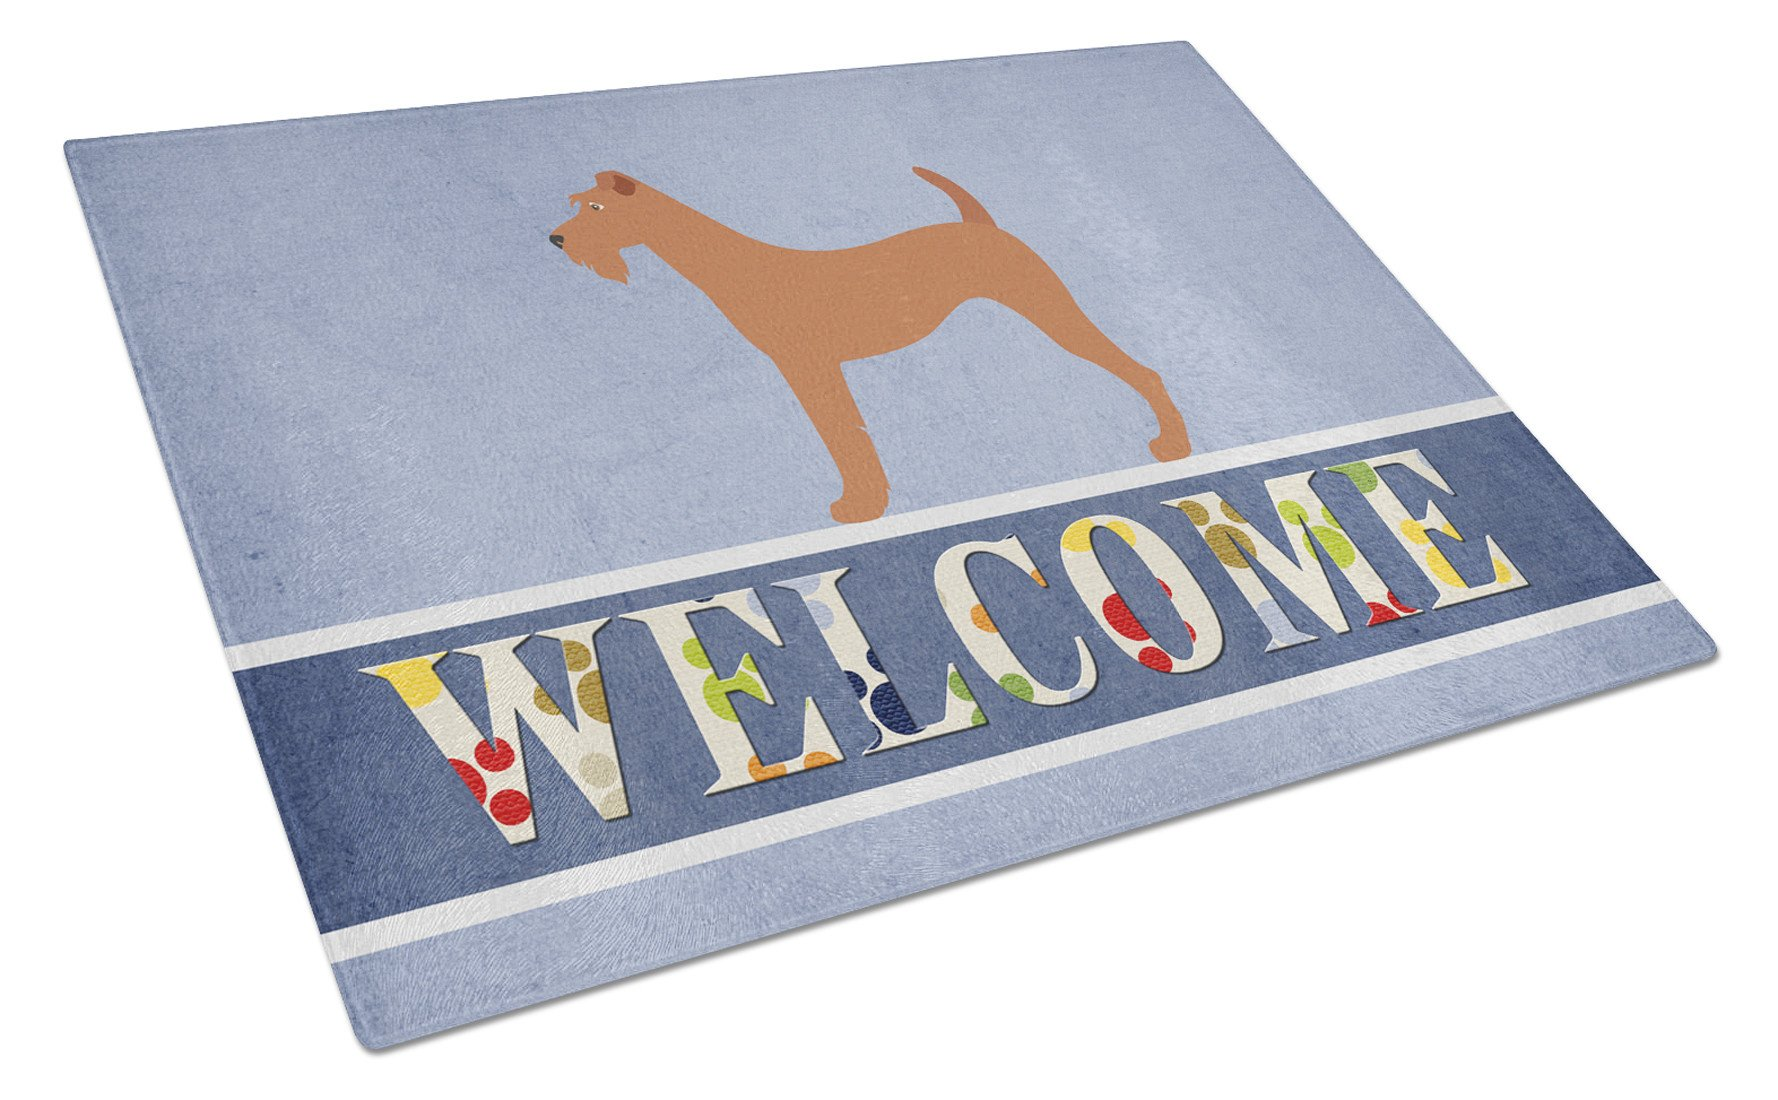 Irish Terrier Welcome Glass Cutting Board Large BB8276LCB by Caroline's Treasures